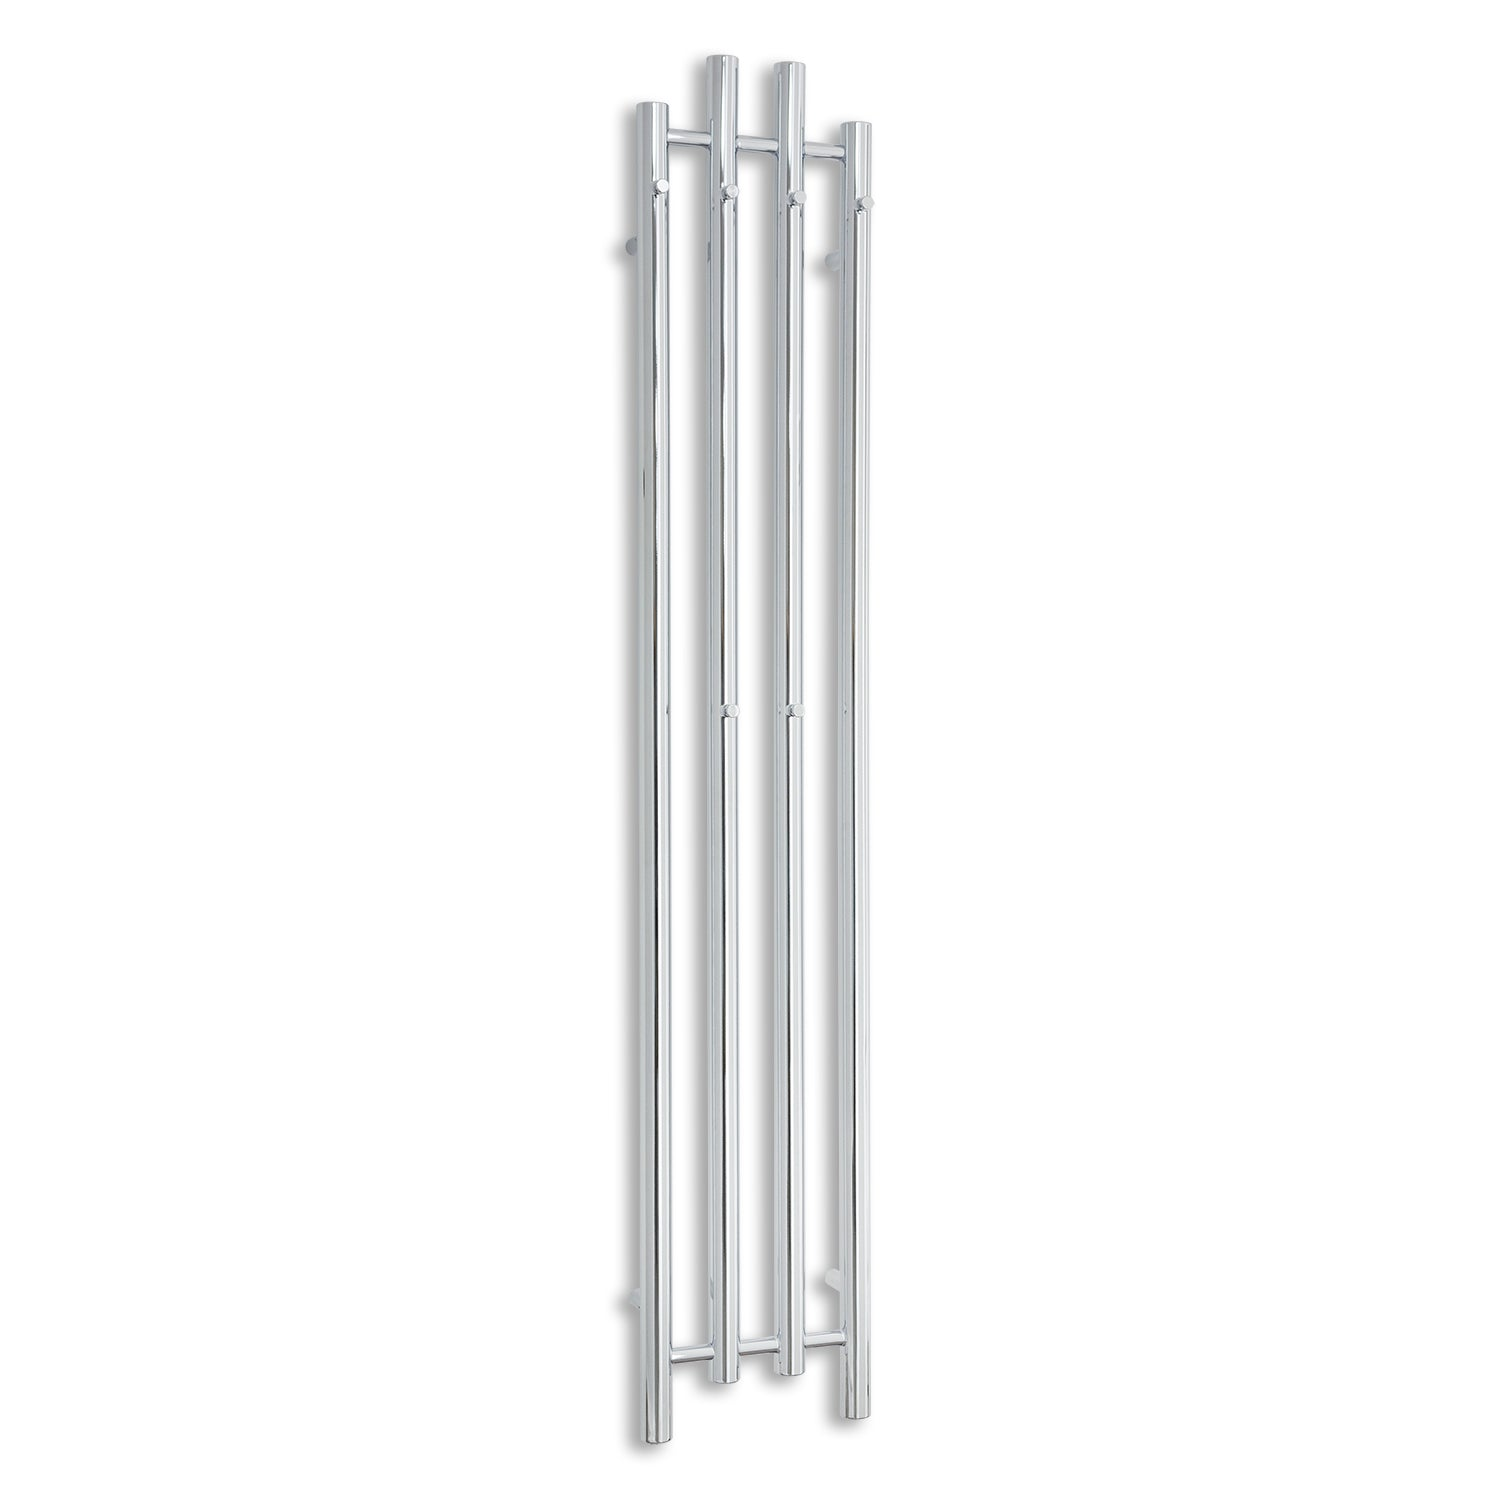 300mm Wide 1600mm High Chrome Towel Rail Radiator